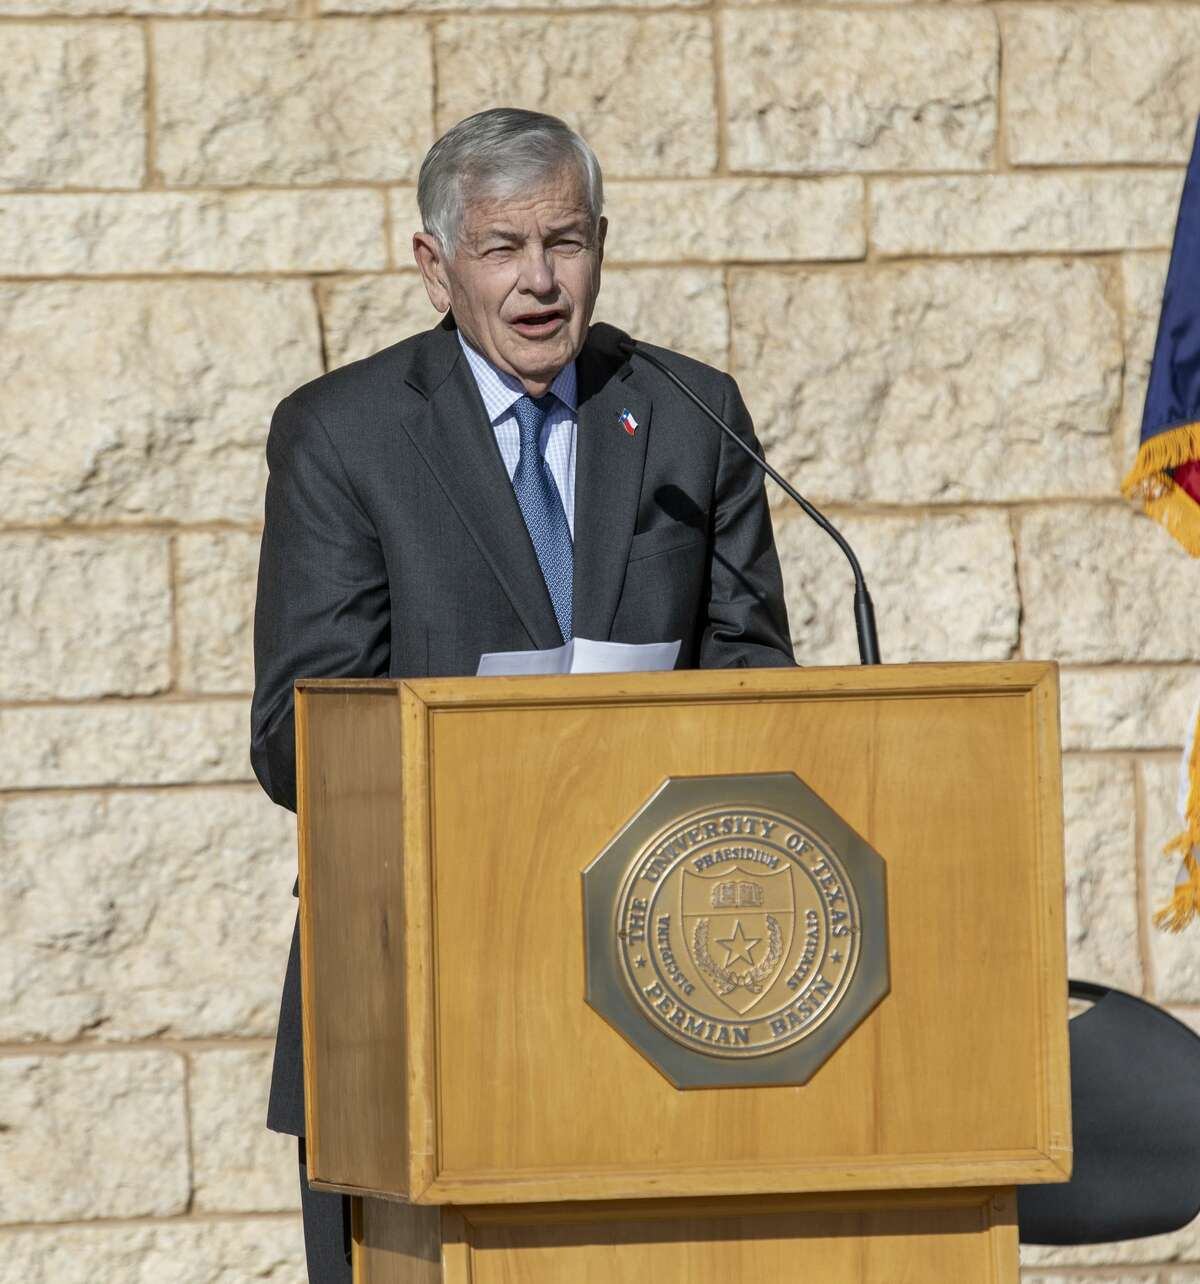 FILE PHOTO: State Rep. Tom Craddick speaks at the grand opening for the Engineering Building on Tuesday, Oct. 22, 2019 at the UTPB Midland campus.